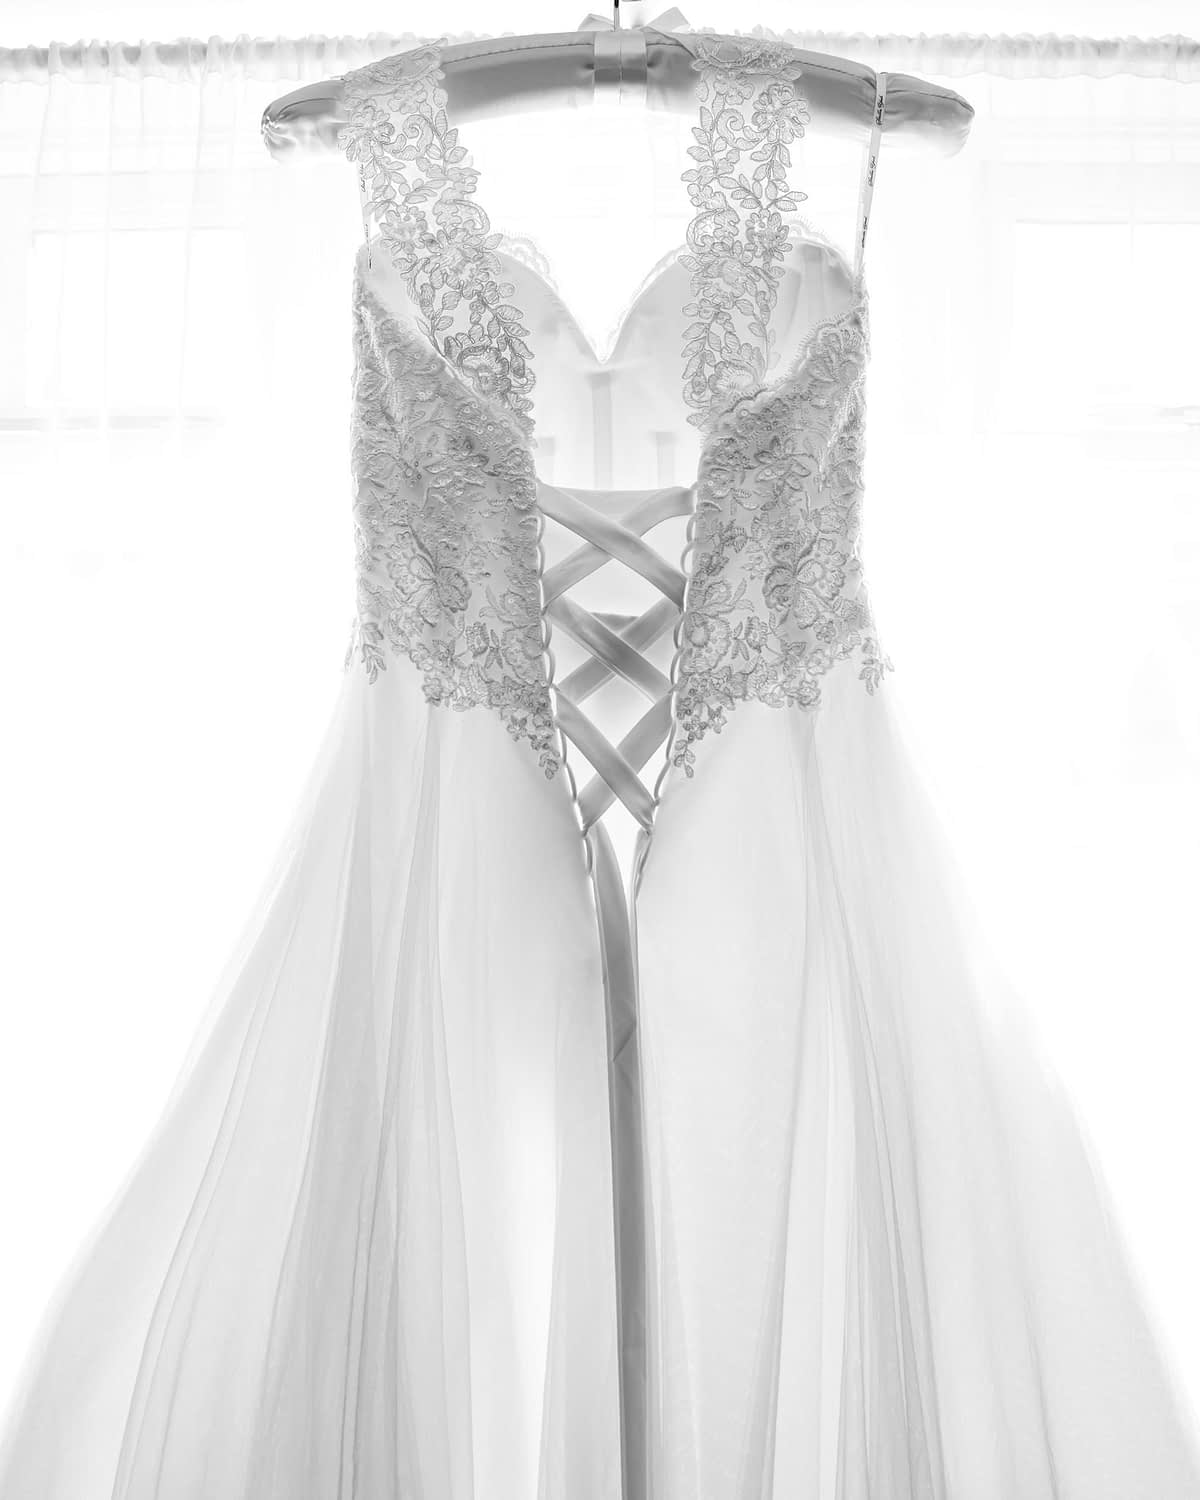 bridal gown hanging up in front of window